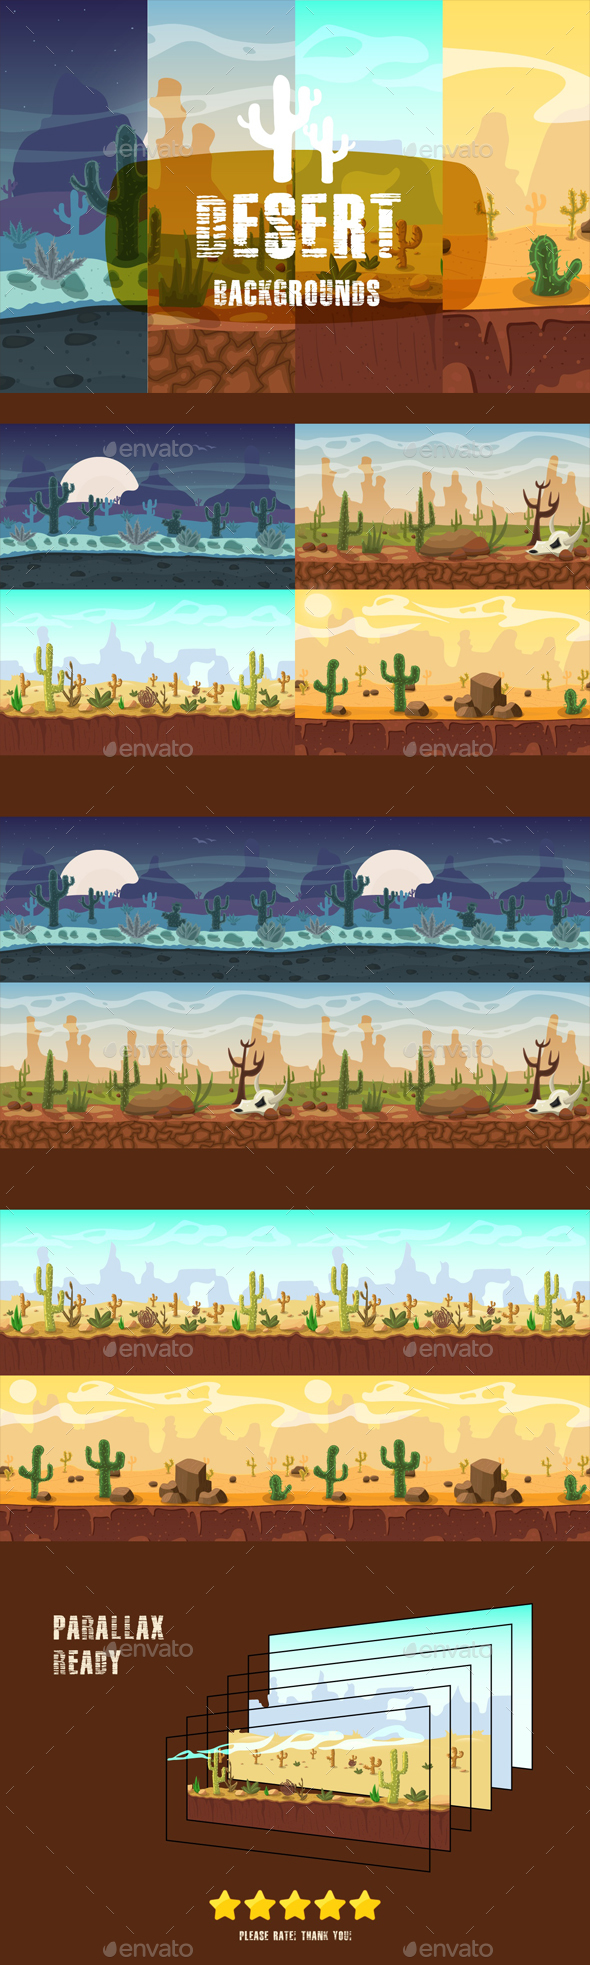 GraphicRiver Parallax Desert 2D Backgrounds 21164178